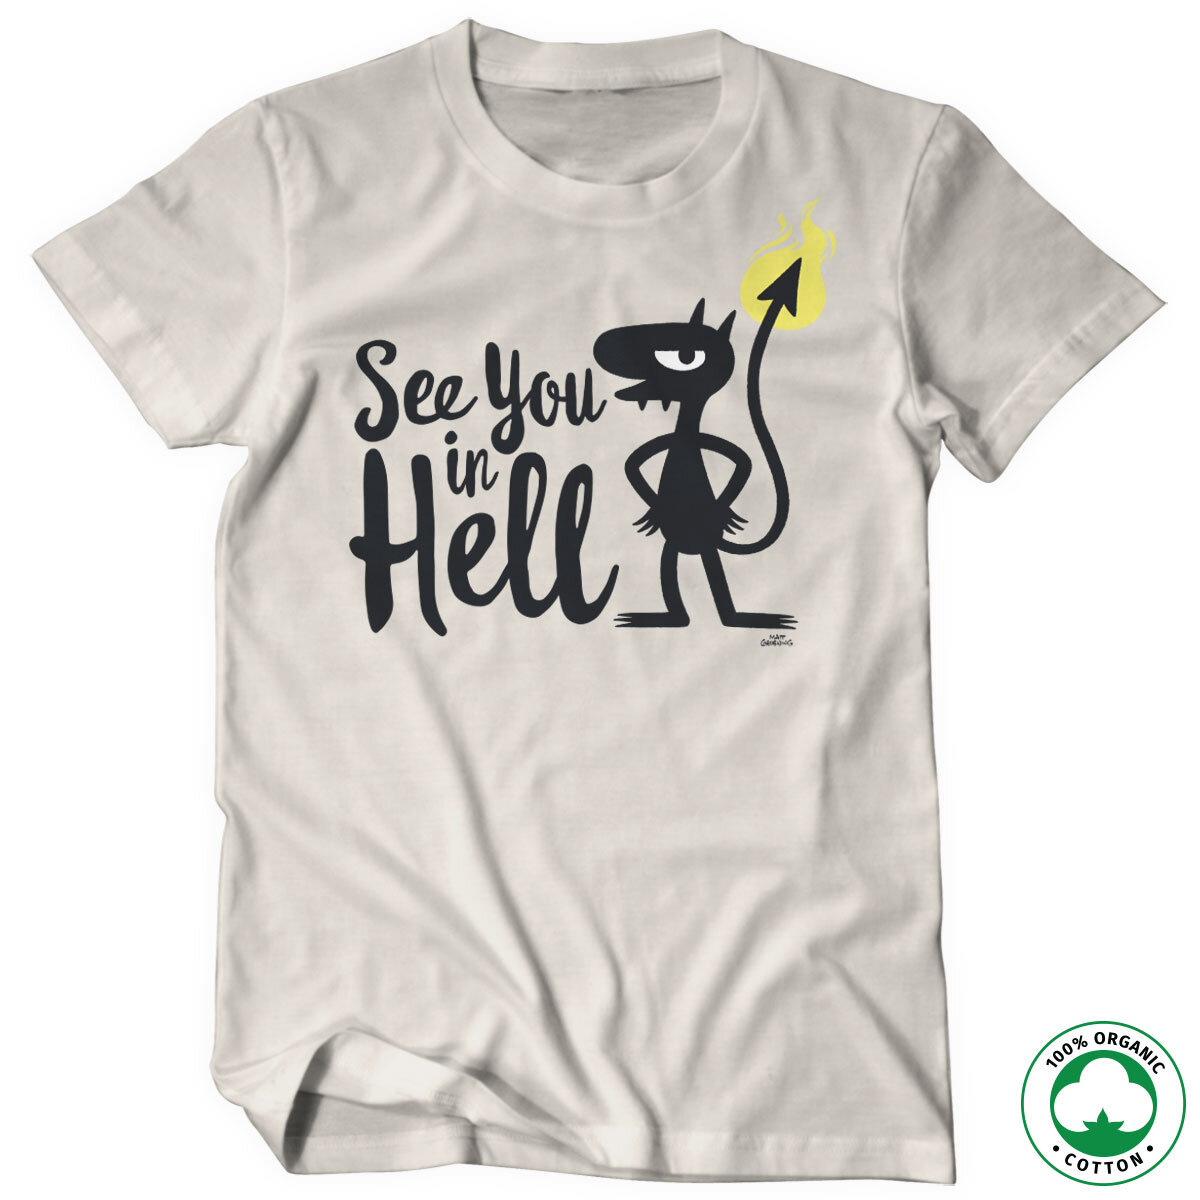 Luci - See You In Hell Organic Tee